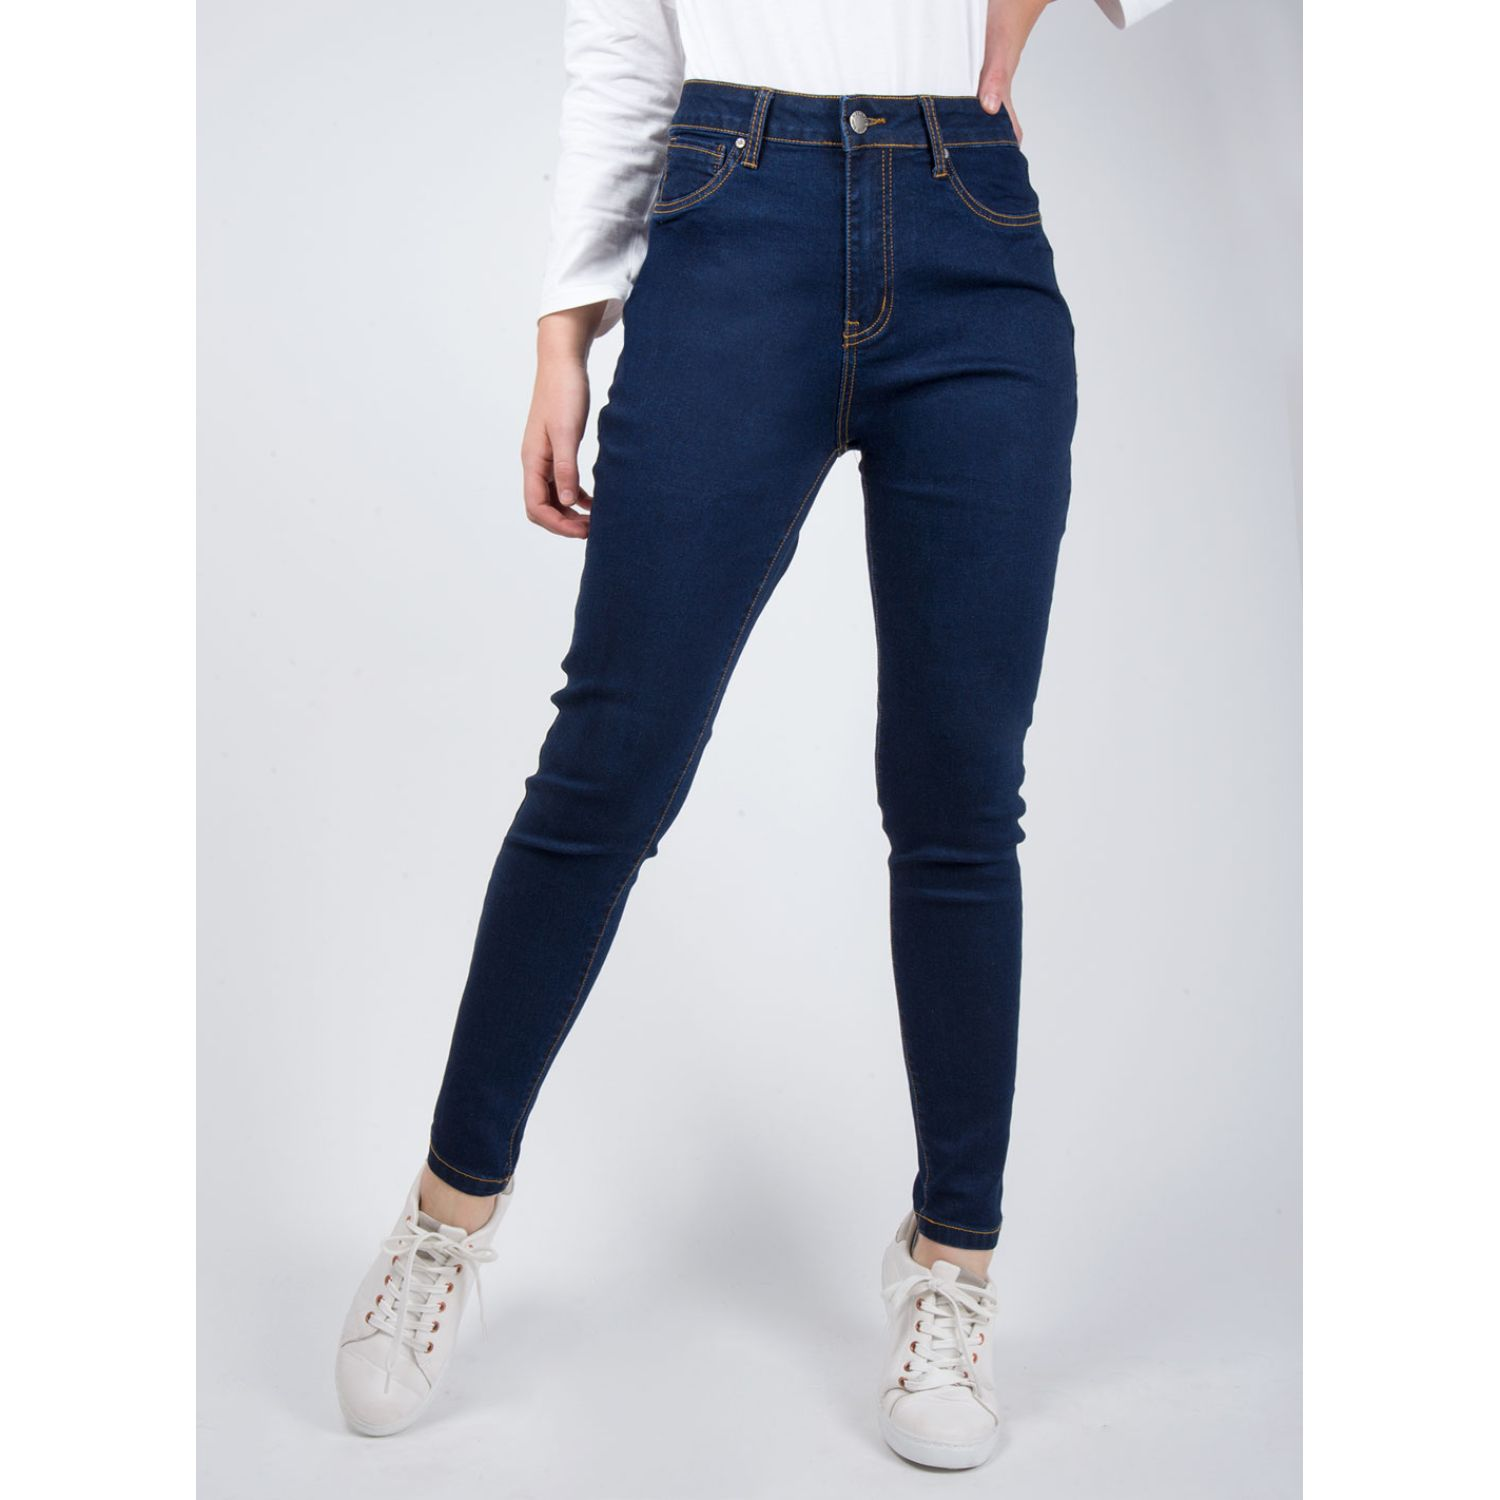 SISI JEGGINS CINTURA ALTA Denim Leggings